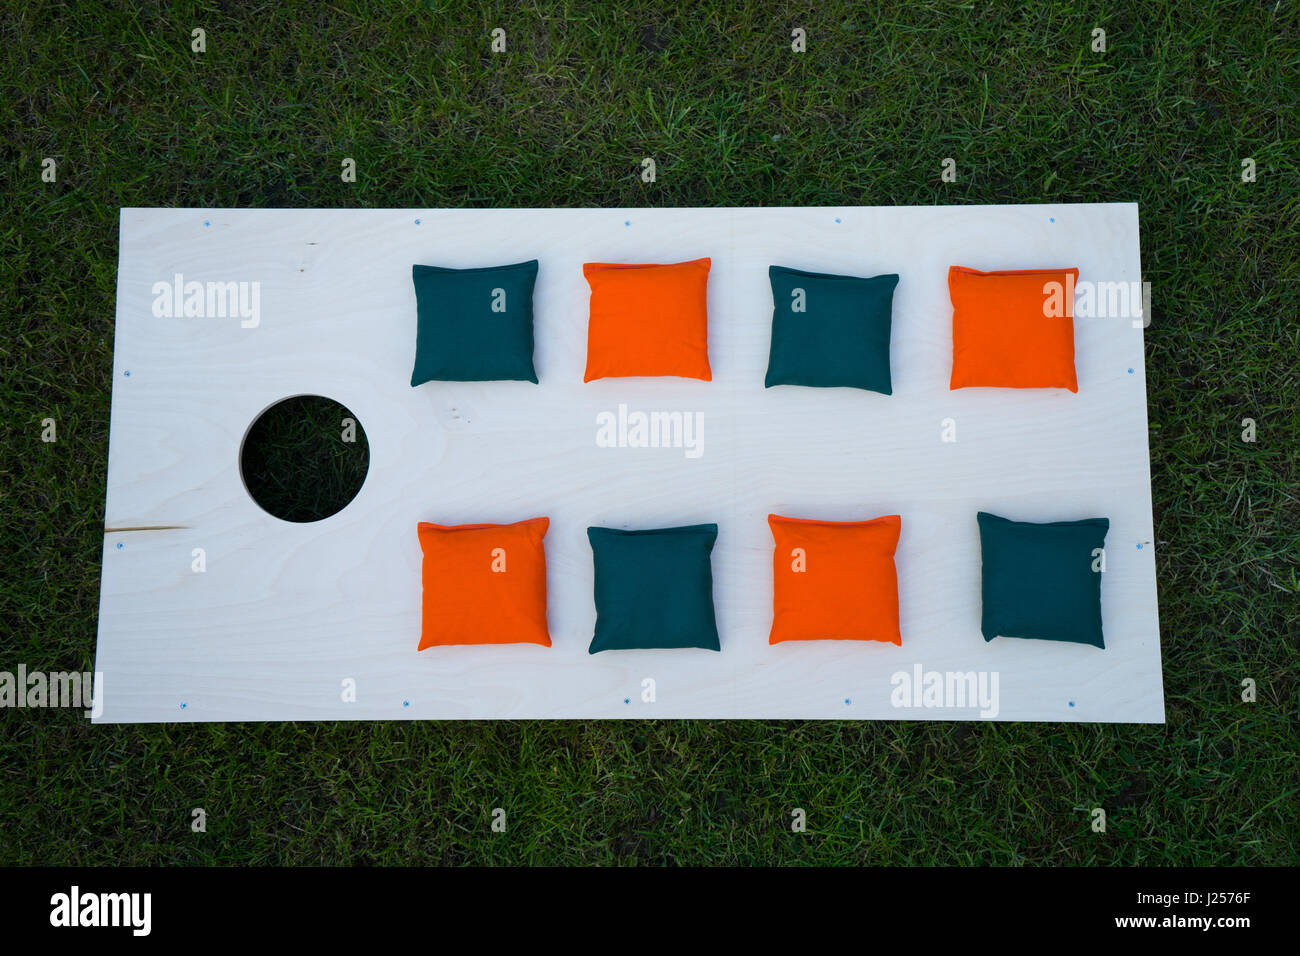 Cornhole Board Flat Lay with beanbags on grass - Stock Image